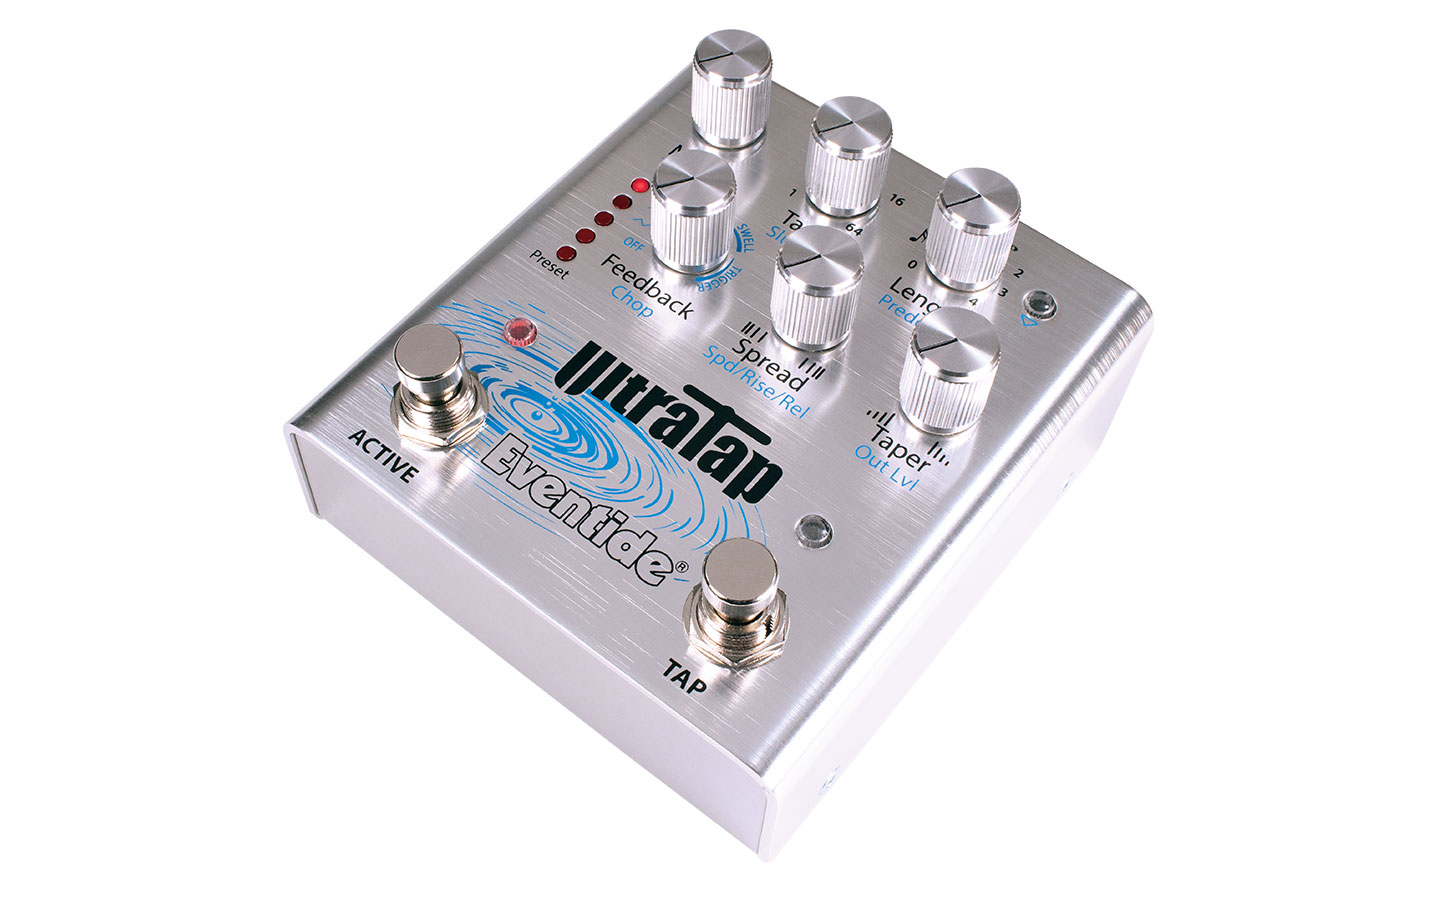 Eventide UltraTap Tap Delay Pedal Side Panel